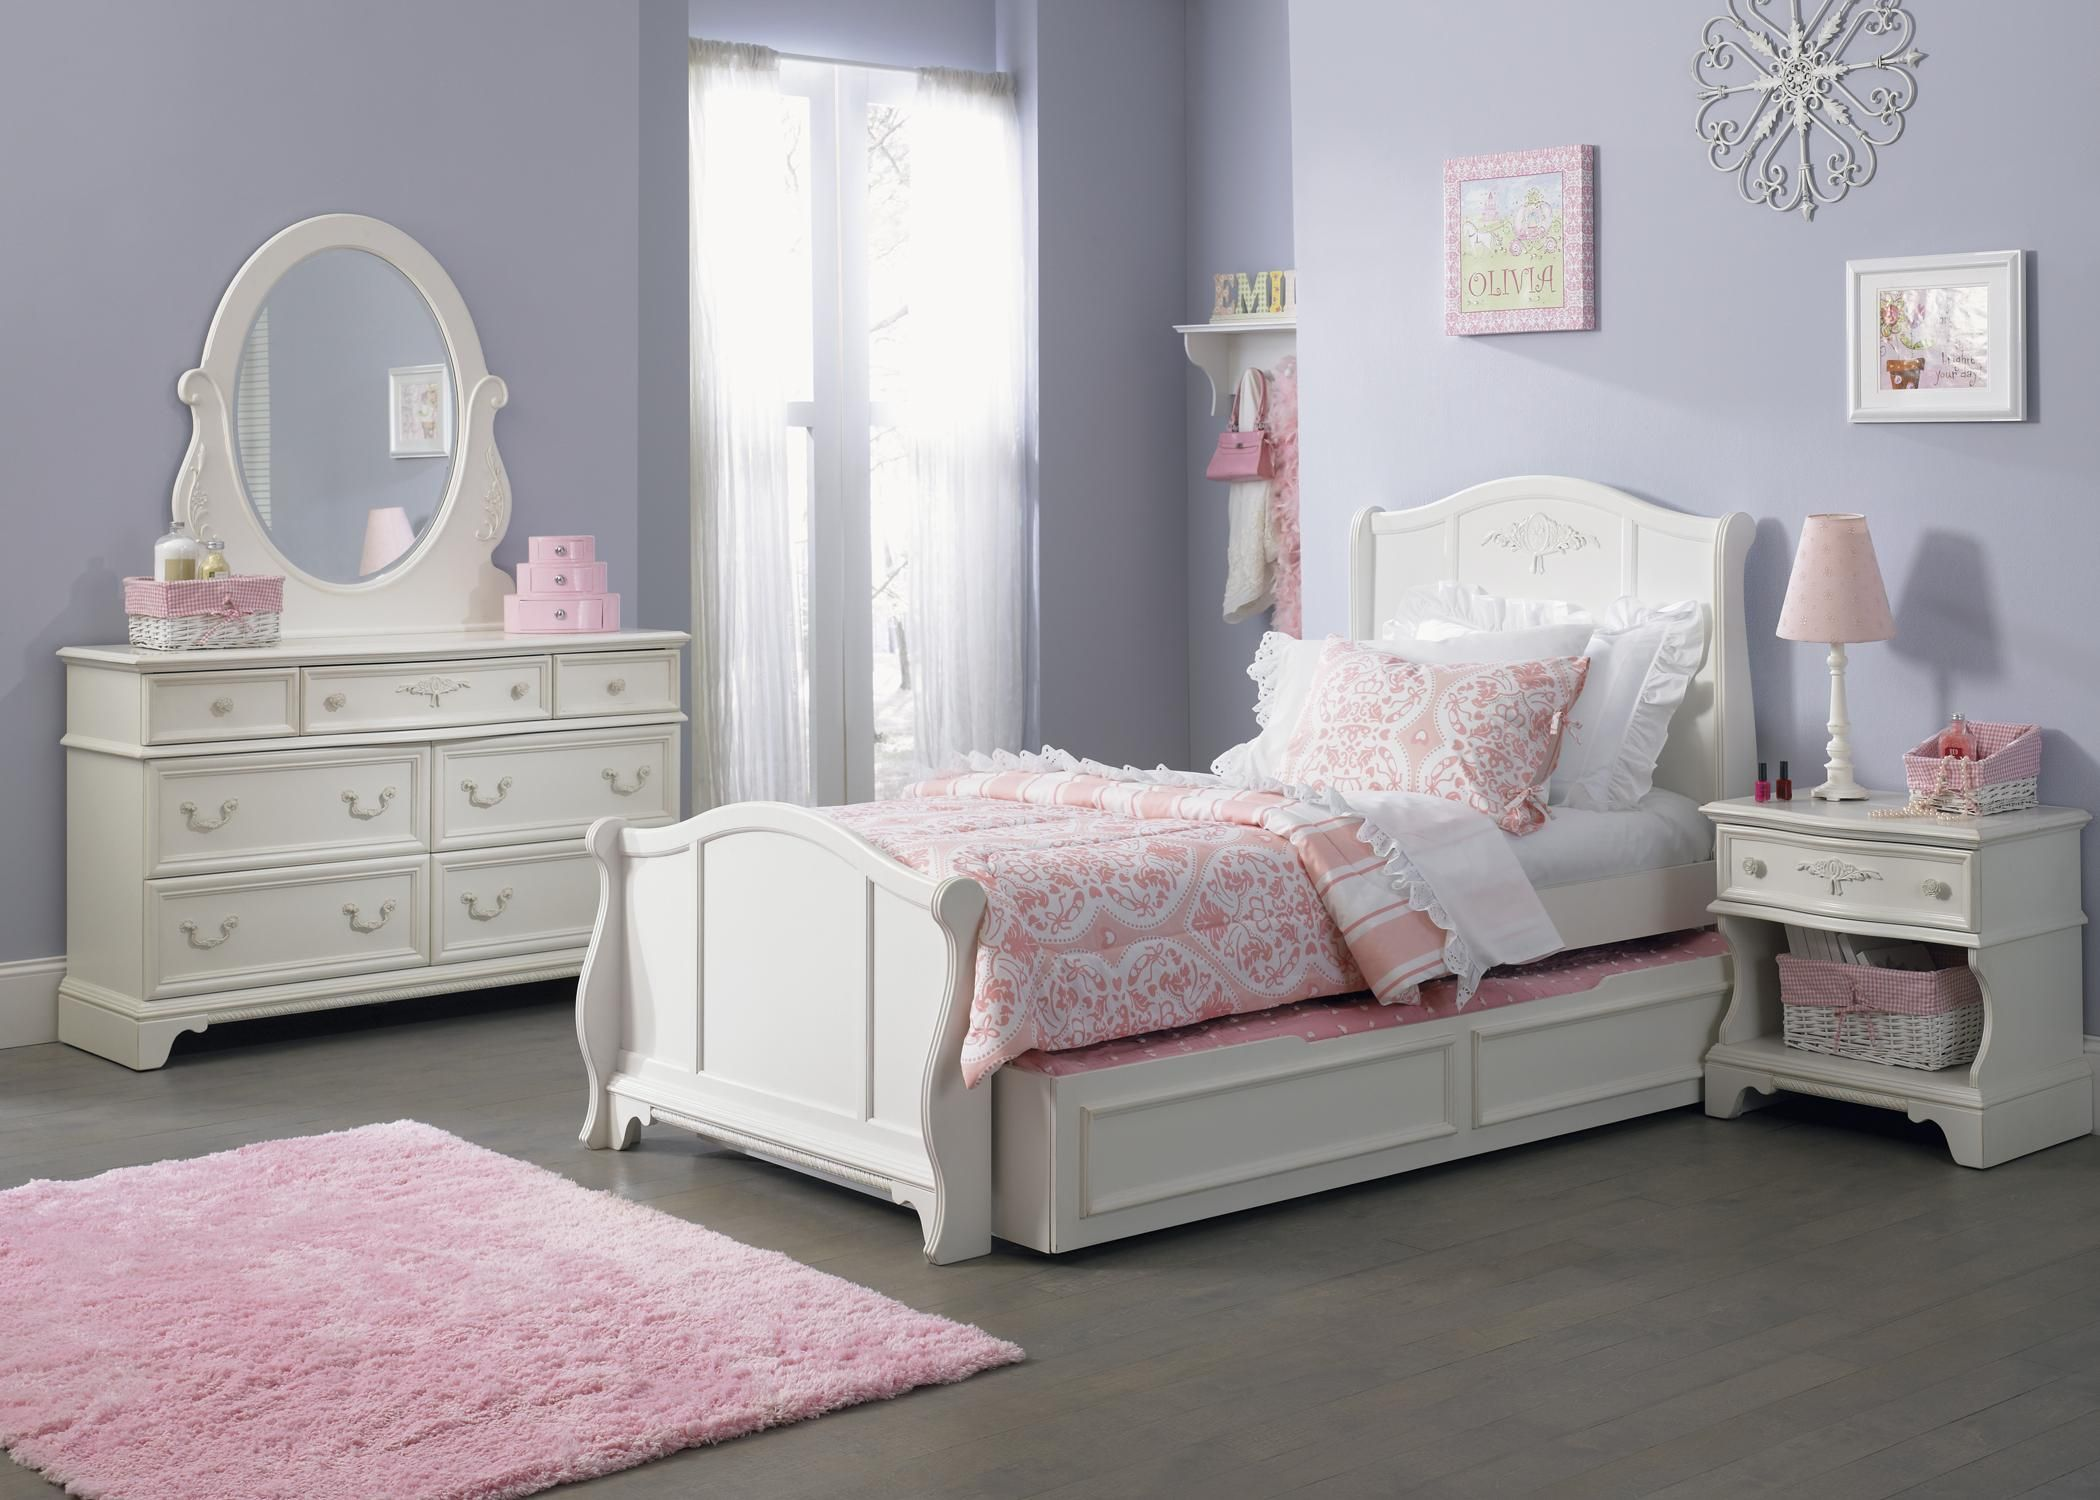 howell's .arielle youth bedroom (352) by liberty furniture